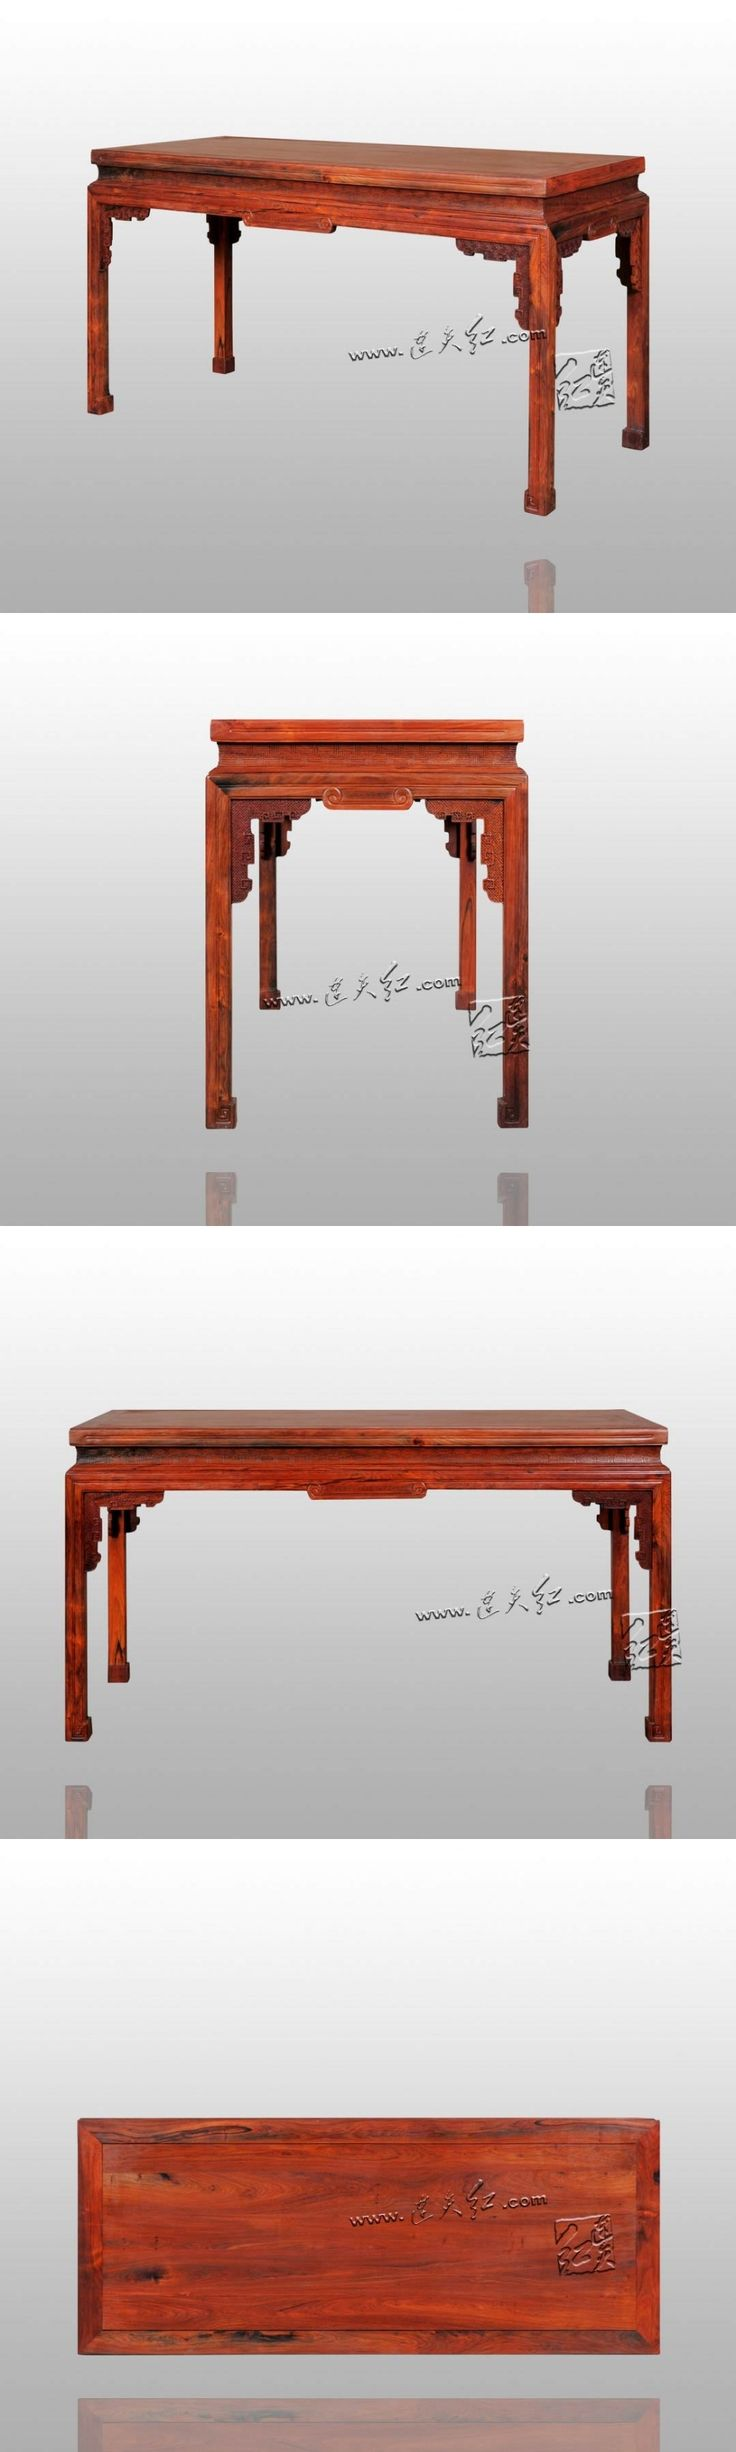 Chinese Classical Fylfot Mosaic Drawing Desks Solid Wood Book Table House Furniture Writing Study Desk Burmase Rosewood redwood